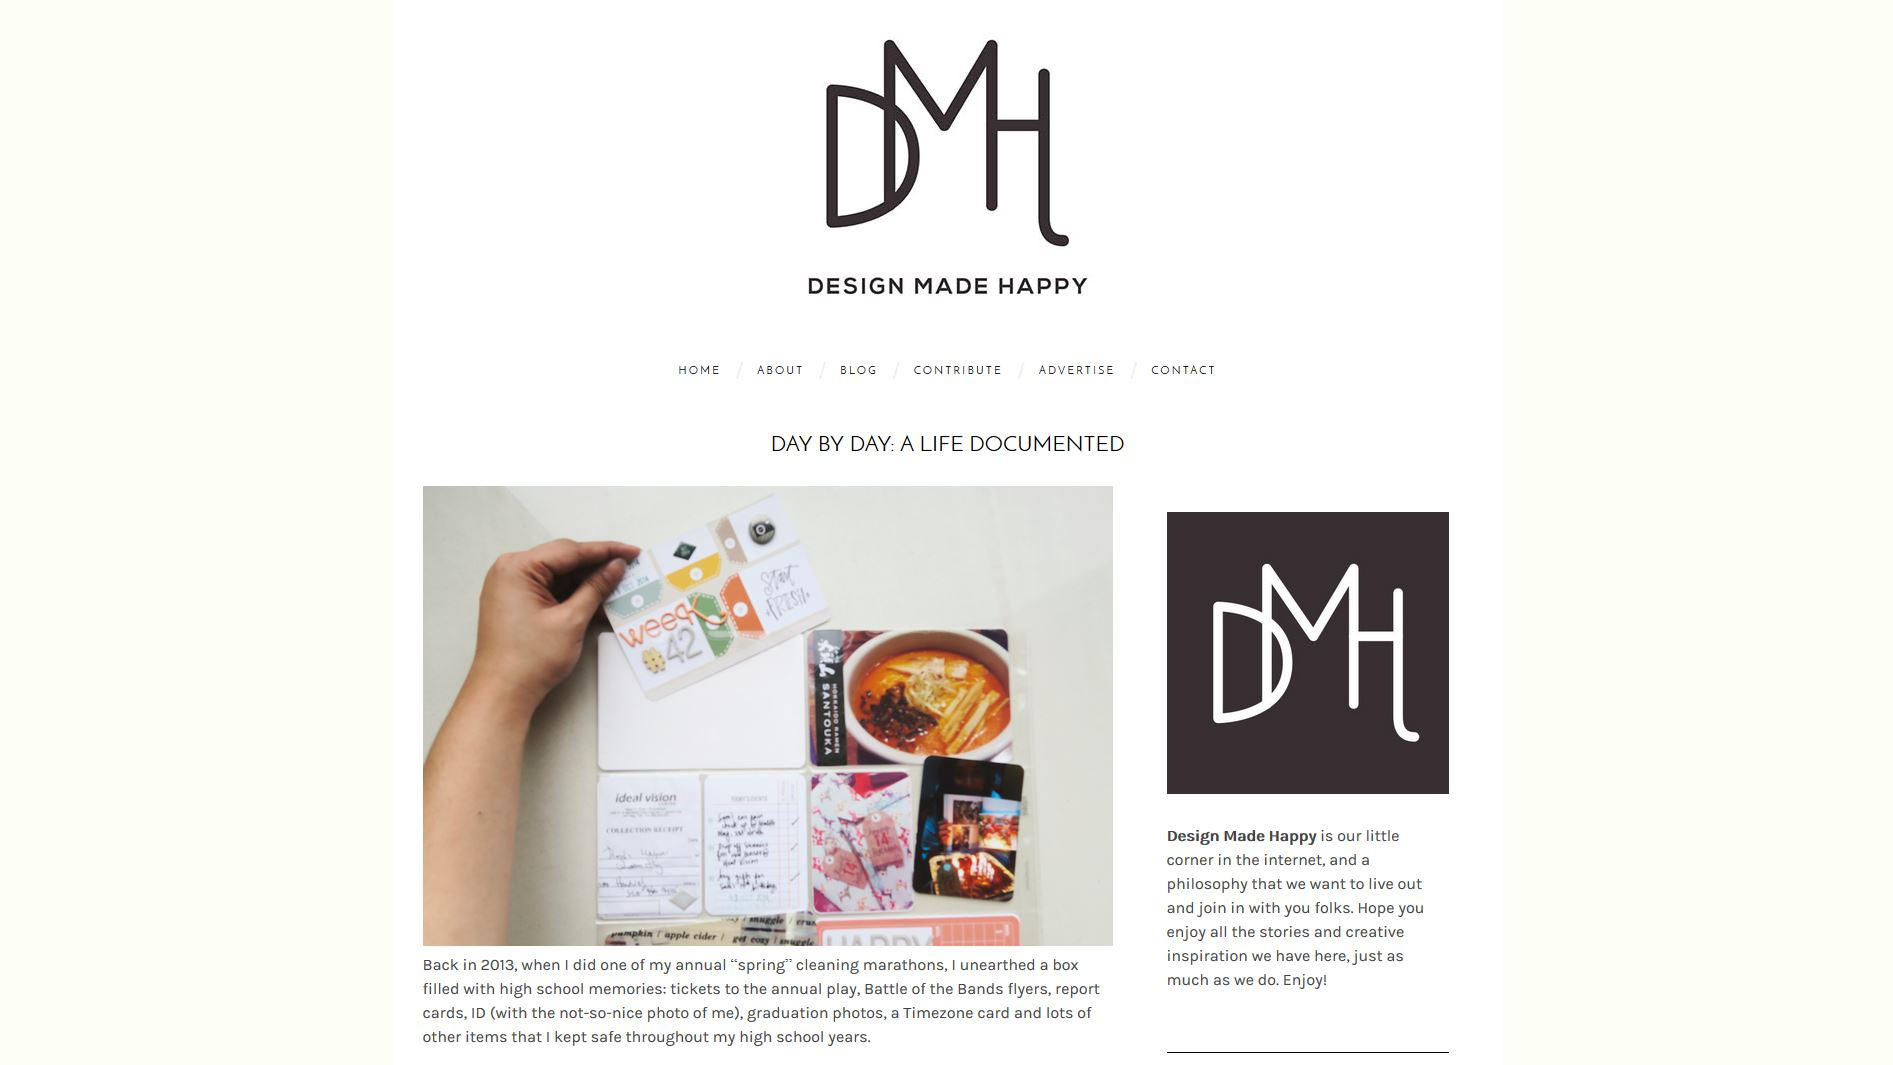 Featured in Design Made Happy Day by Day, a life documented